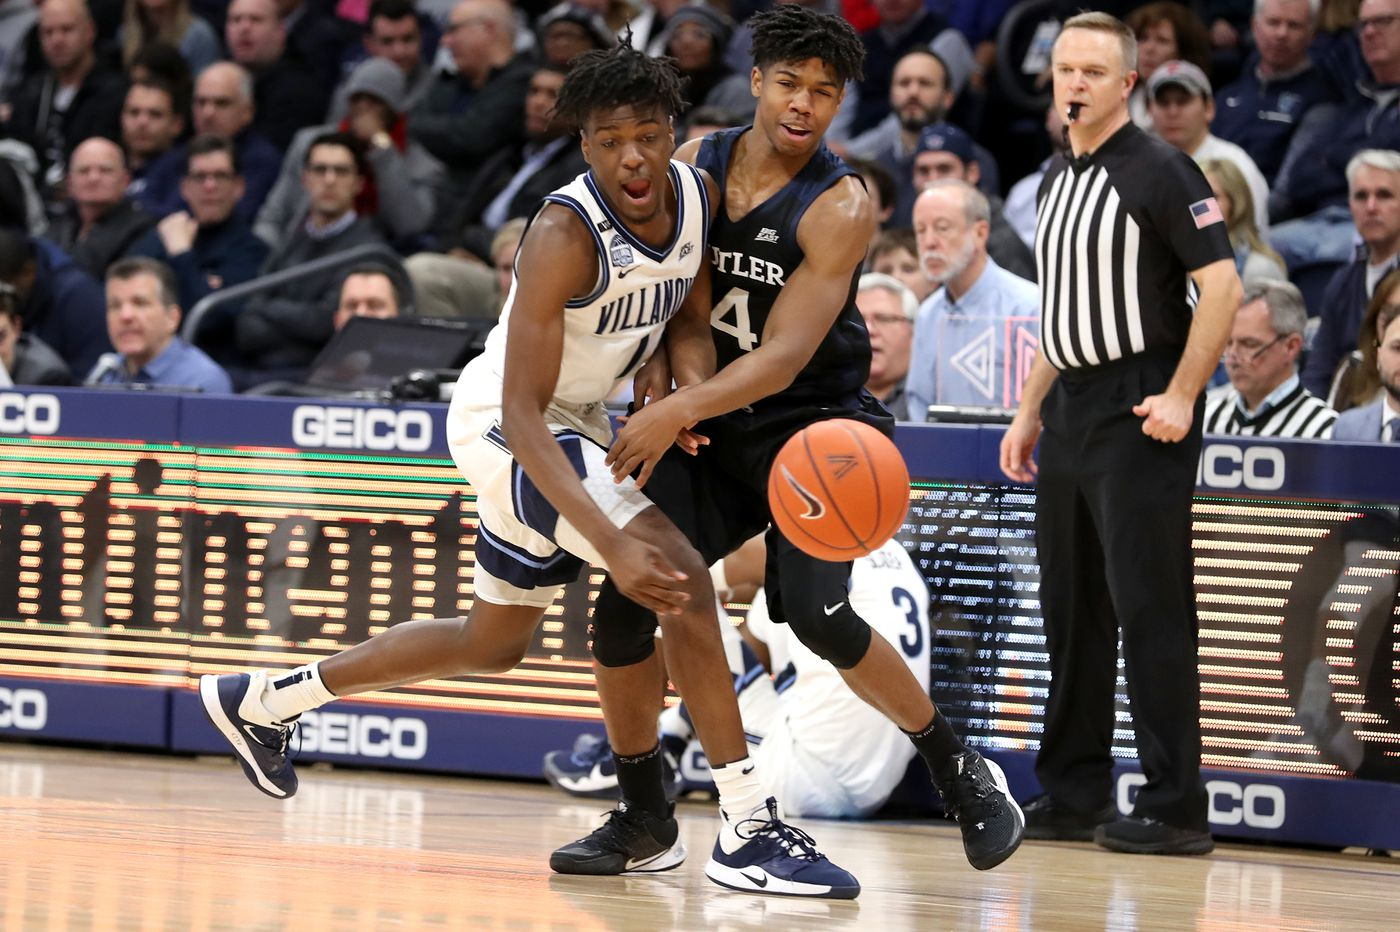 Villanova basketball roster: Even without Saddiq Bey, Wildcats have enough for national title run